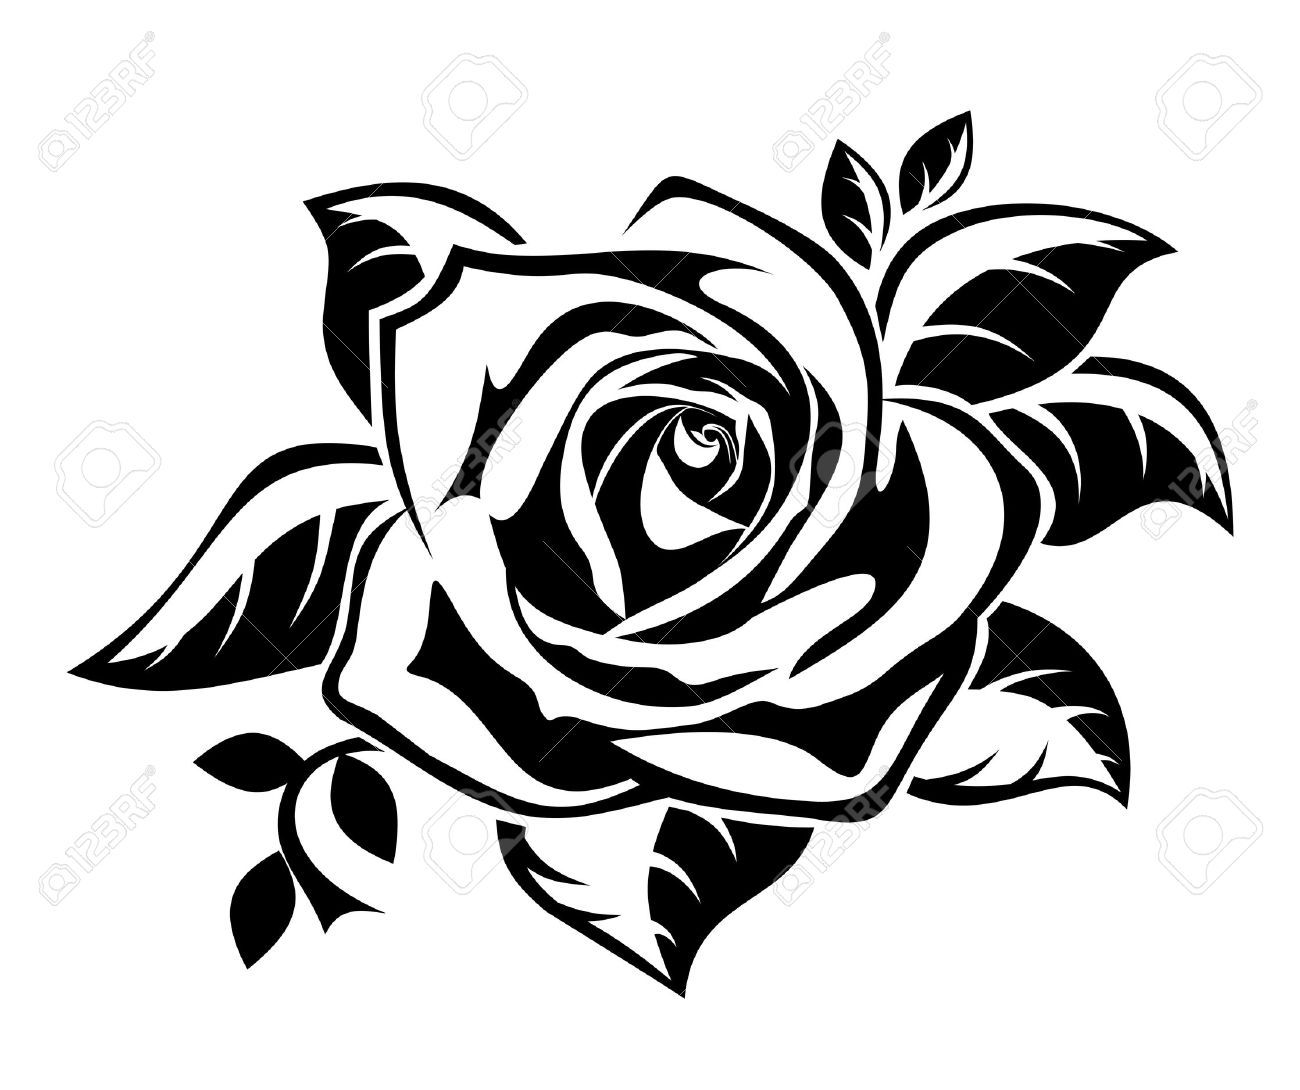 Rose Cliparts, Stock Vector And Royalty Free Rose ...